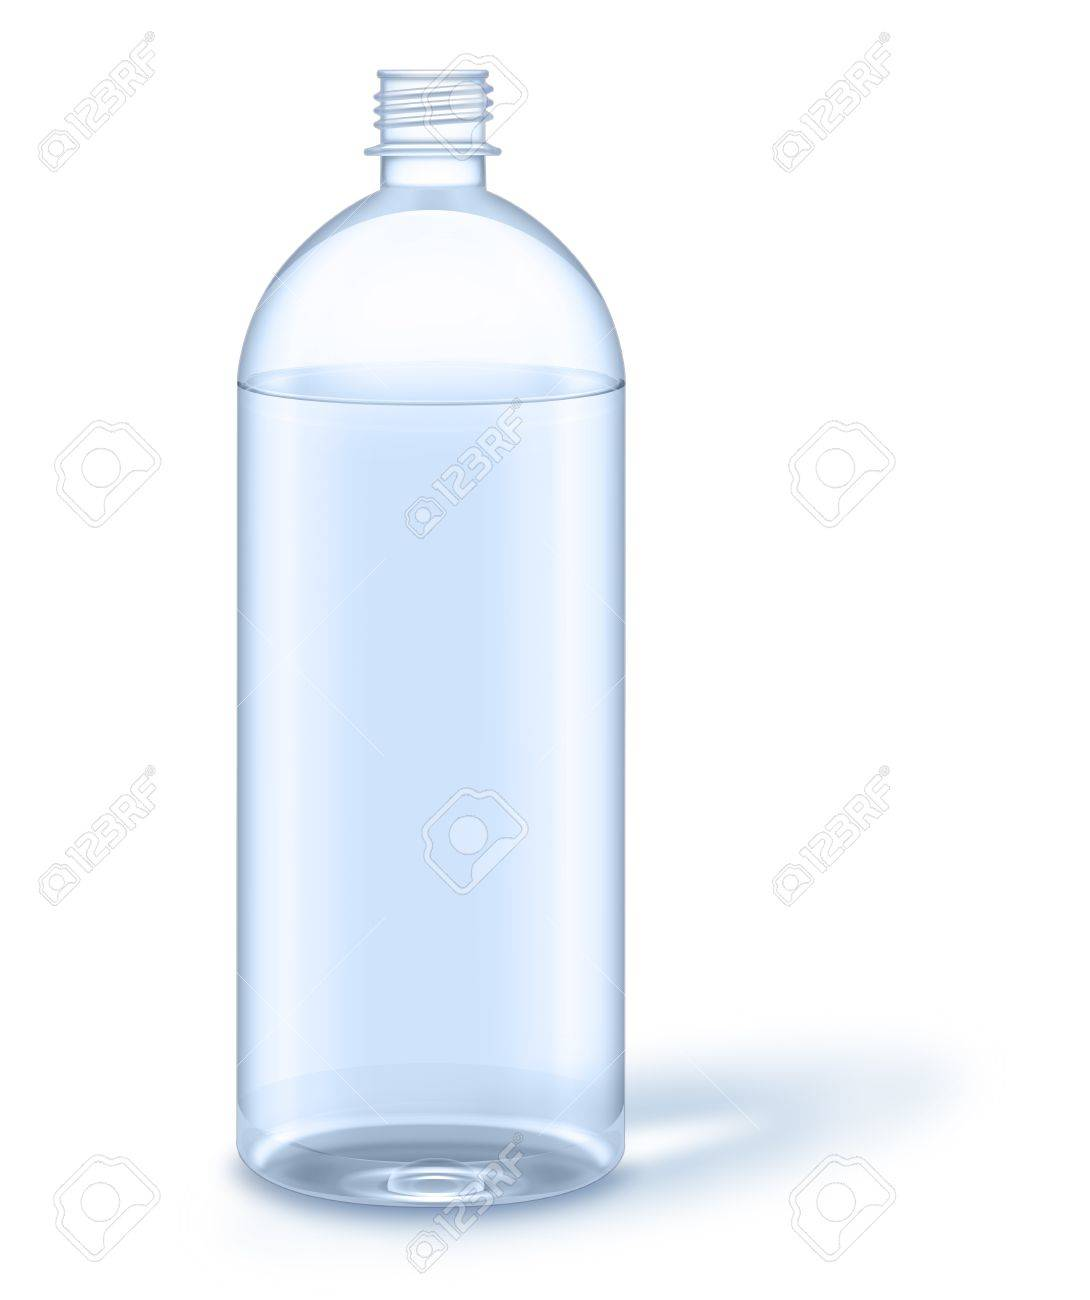 water bottle without label